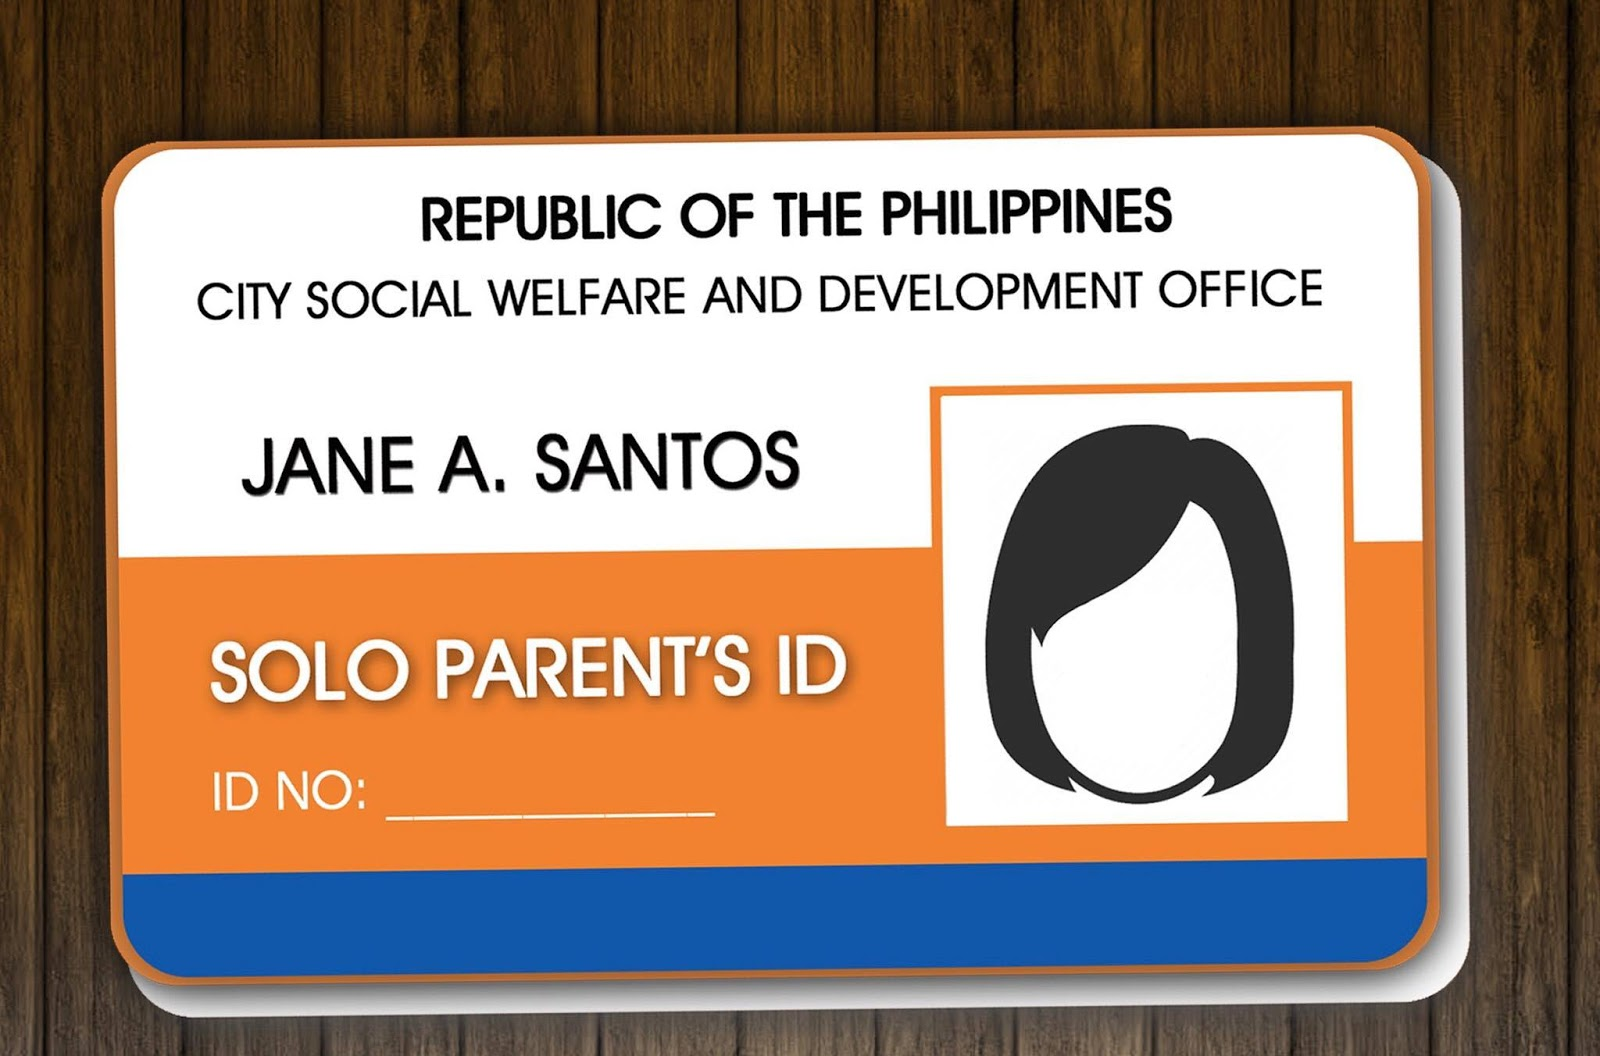 single parents' benefits under solo parent act of the philippines